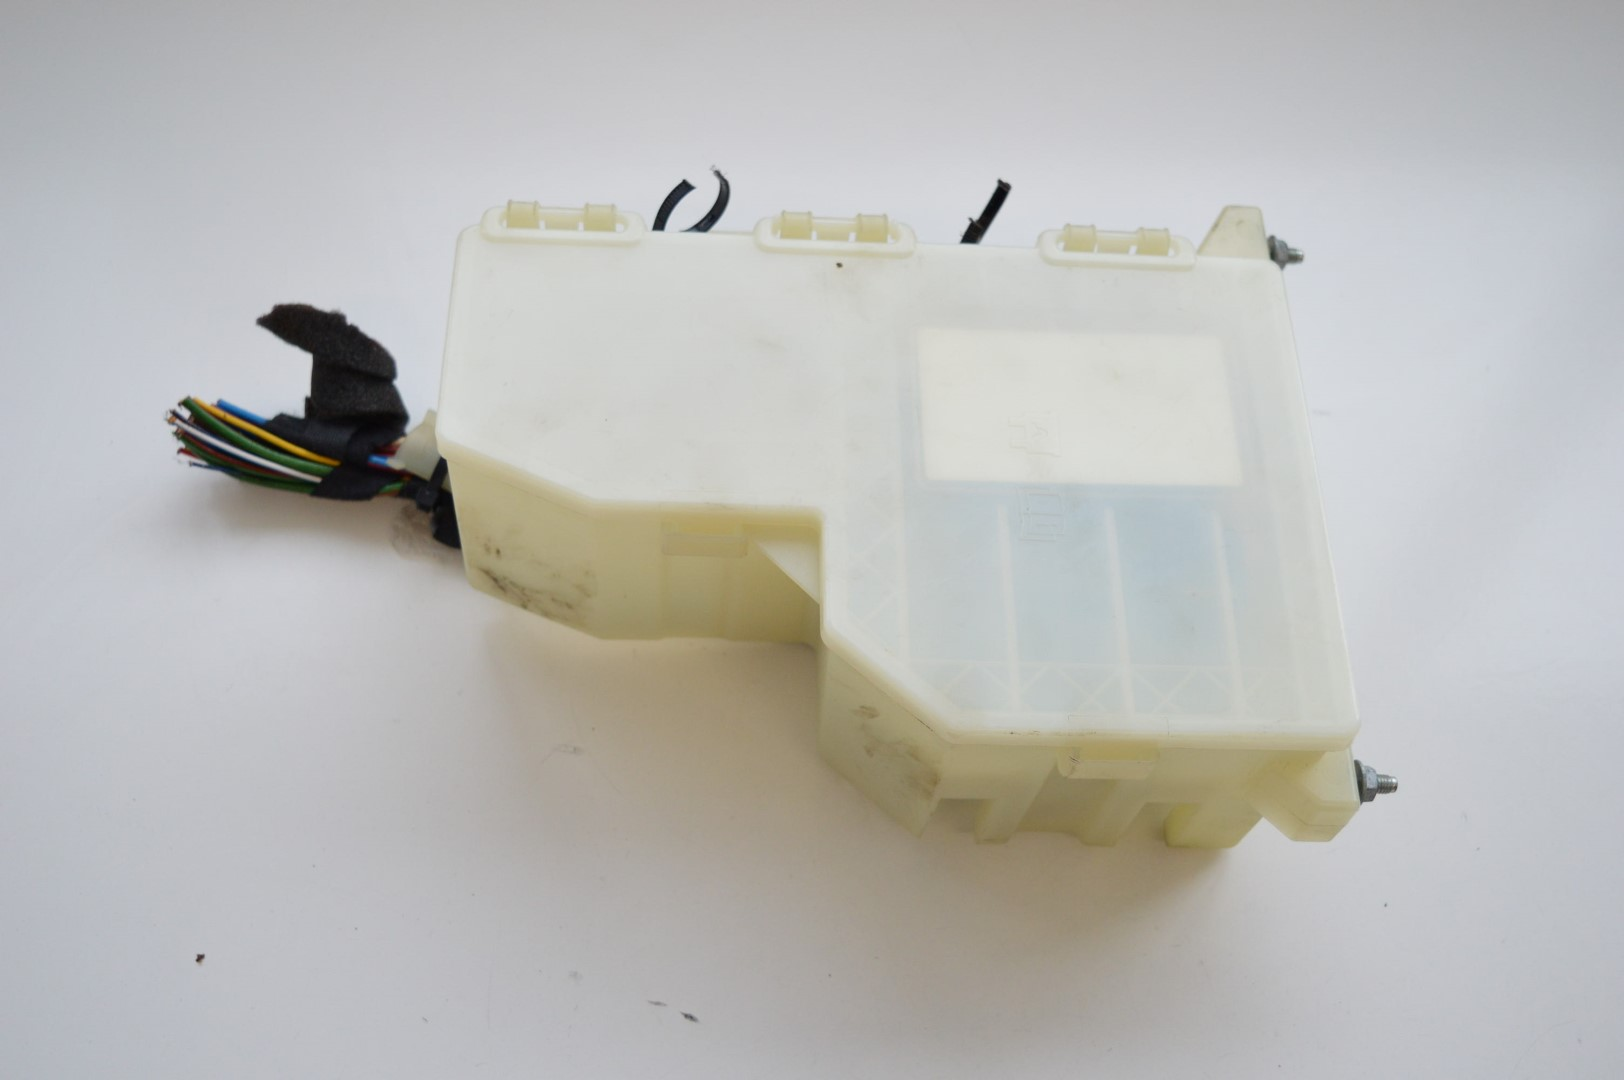 hight resolution of land rover freelander 2009 rhd fuse box with housing cover 6g9t14c507